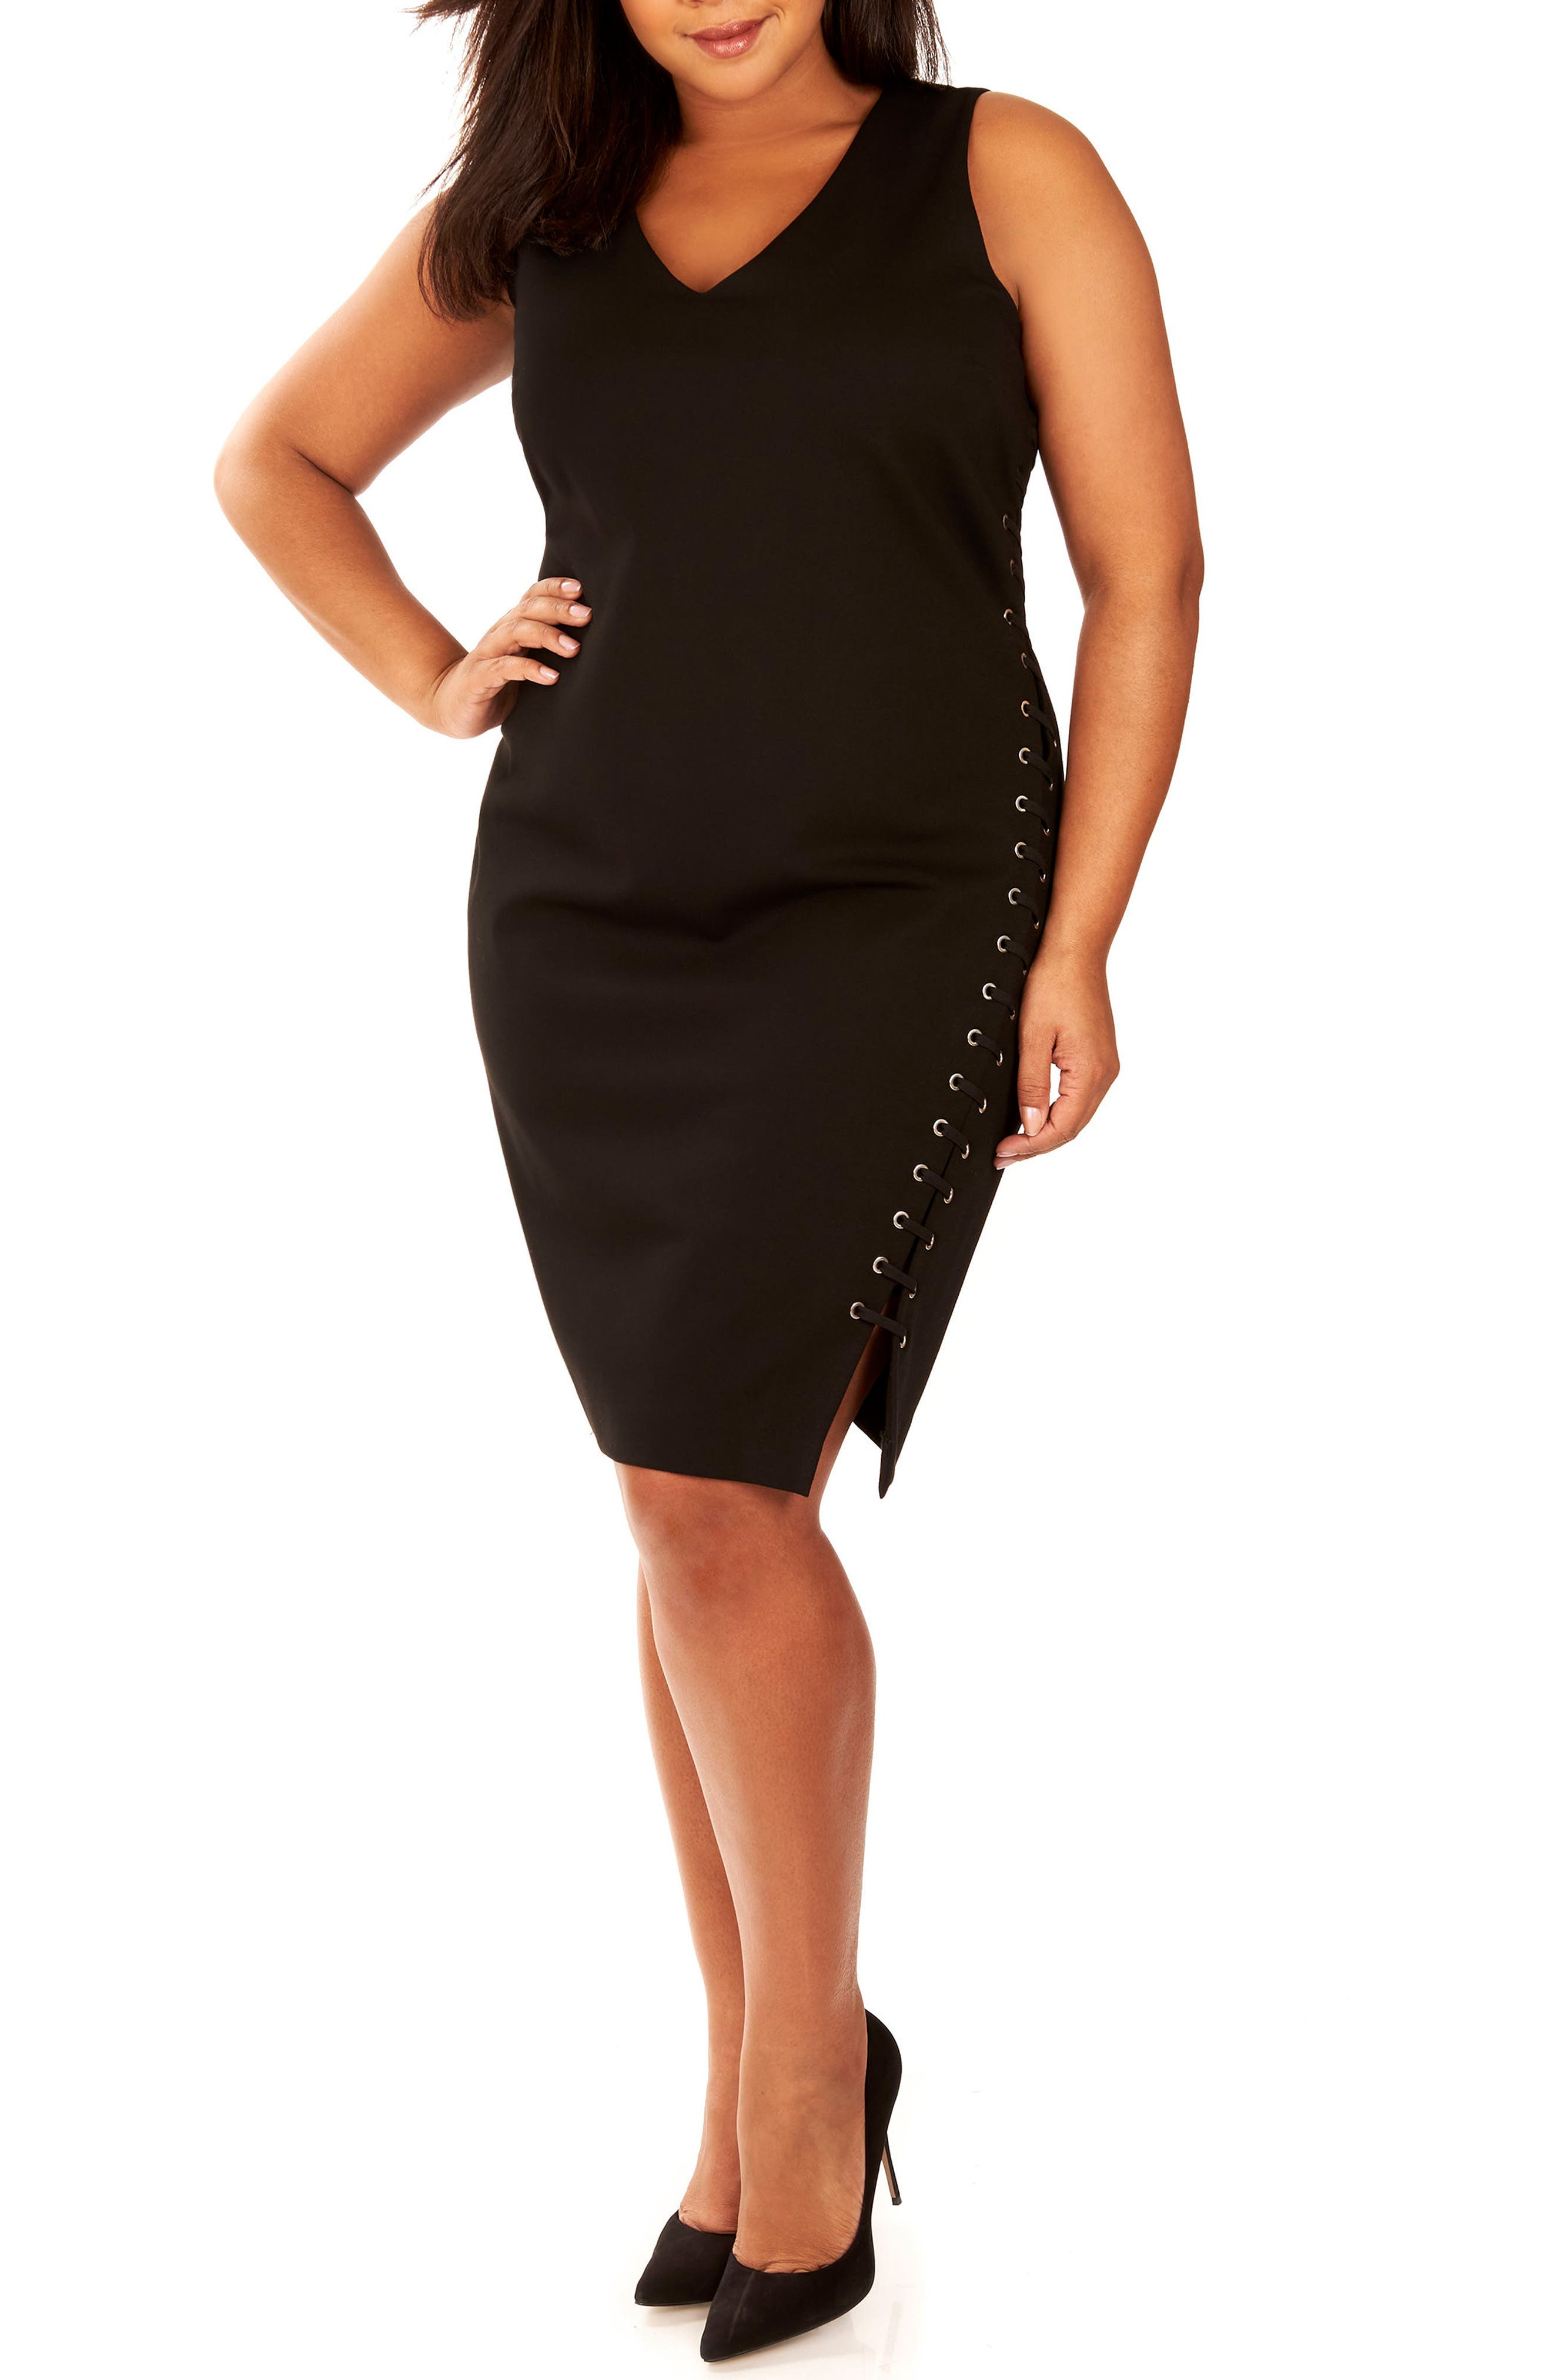 REBEL WILSON X ANGELS Lace-Up Body-Con Dress (Plus Size)